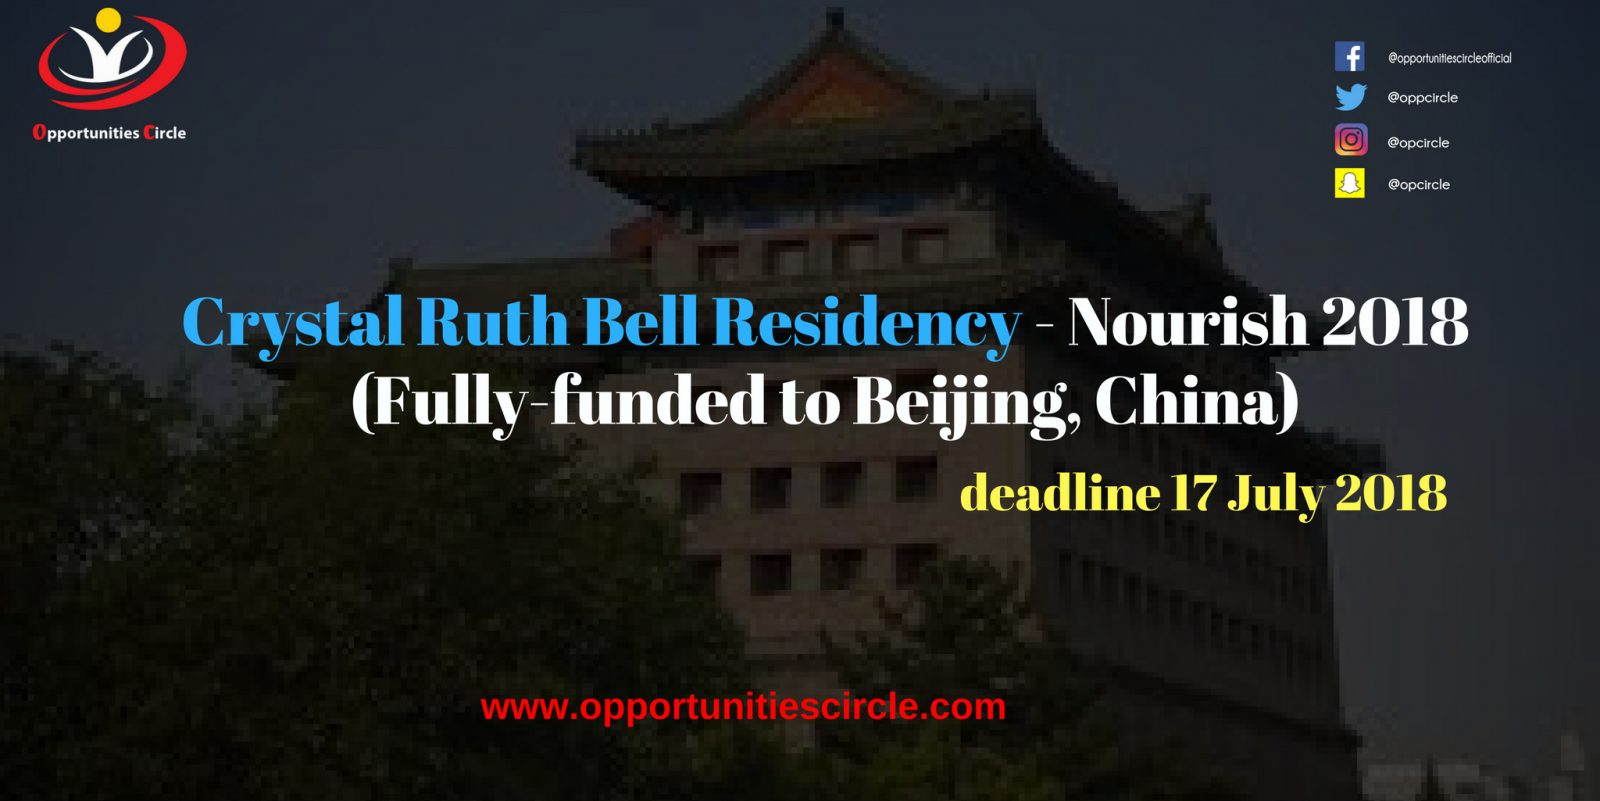 Crystal Ruth Bell Residency - 5th Crystal Ruth Bell Residency - Nourish 2018 (Fully-funded to Beijing, China)